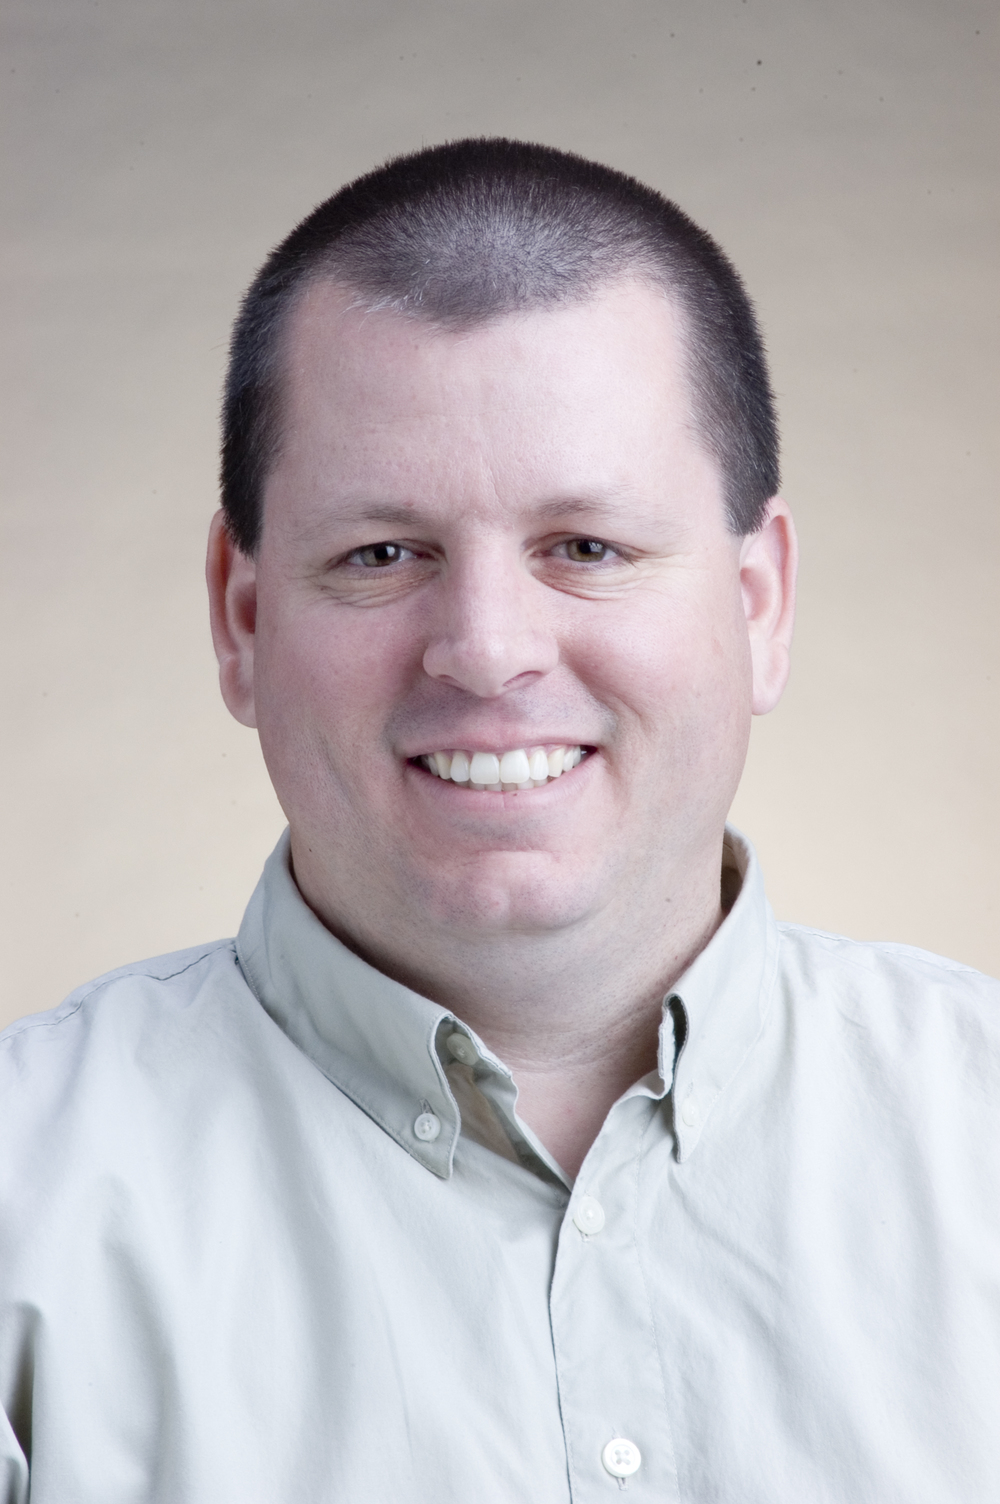 Jeff Ashford is a Certified Financial Planner™ Professional with Access Financial Resources, Inc. in Oklahoma City.